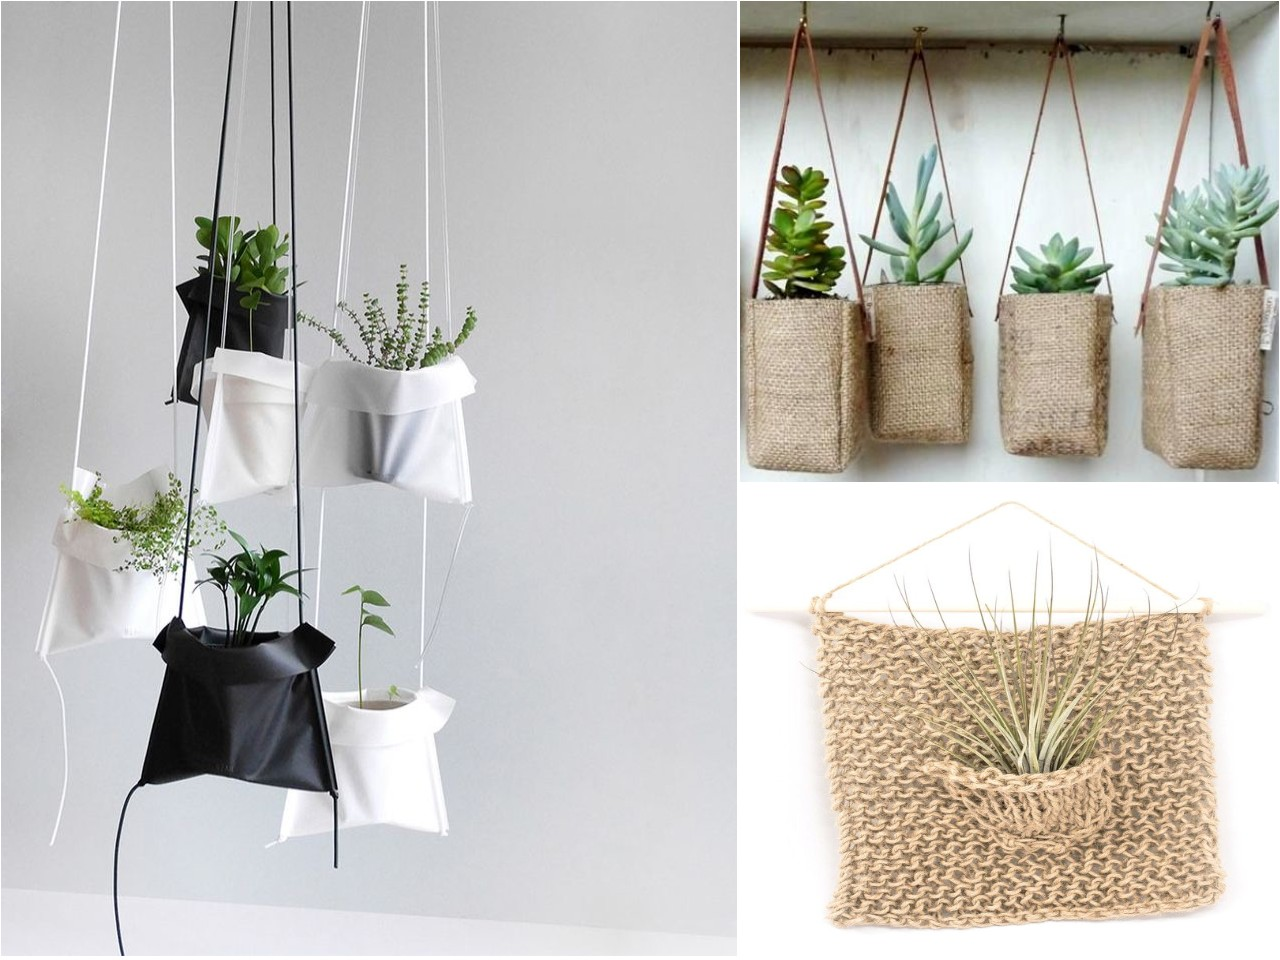 10 ideas de decoraci n con plantas colgantes - Ideas para decorar interiores ...